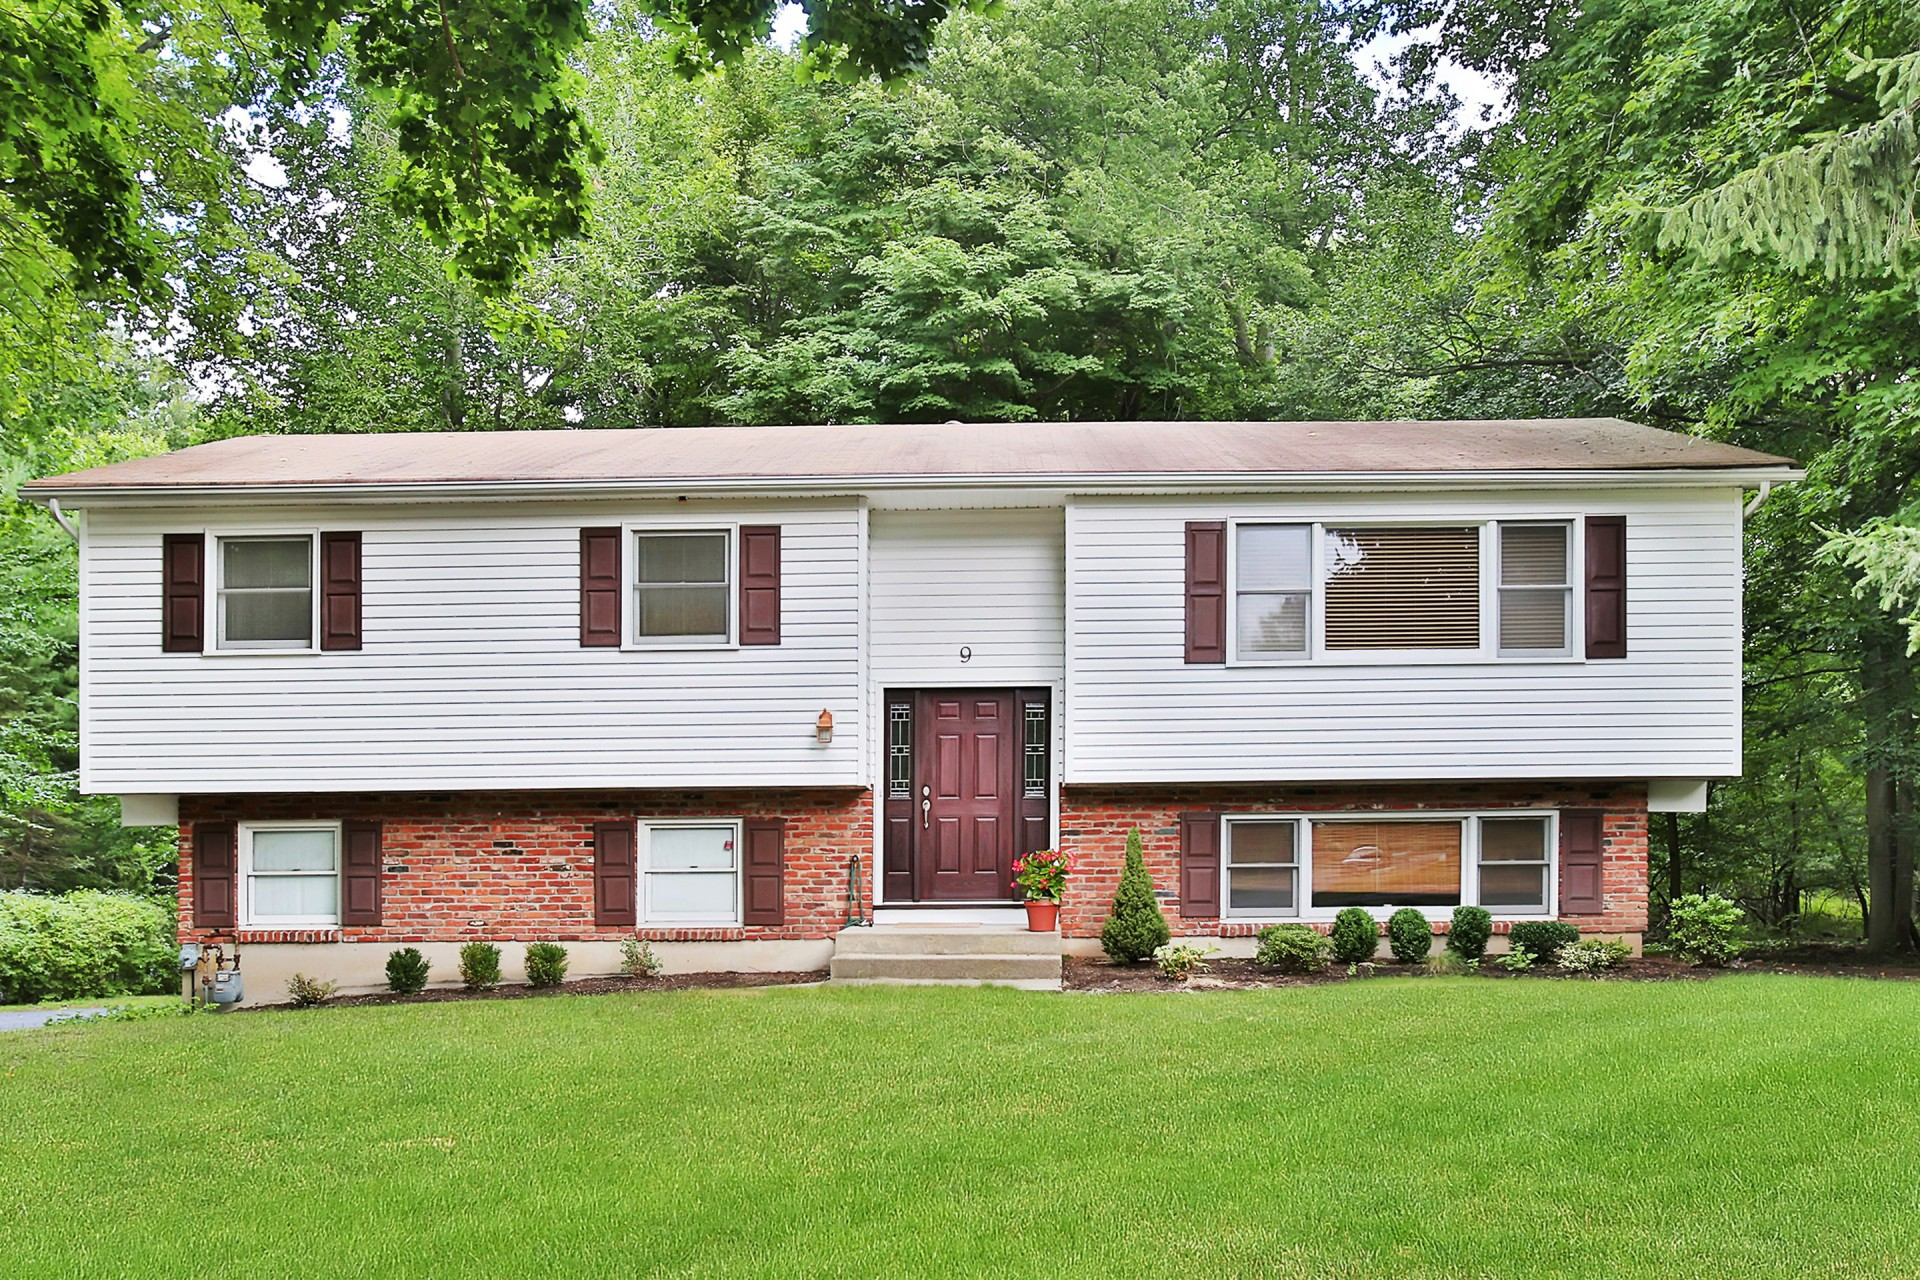 Single Family Home for Sale at Lovingly Maintained 9 Verona Court Clarkstown, New York 10956 United States